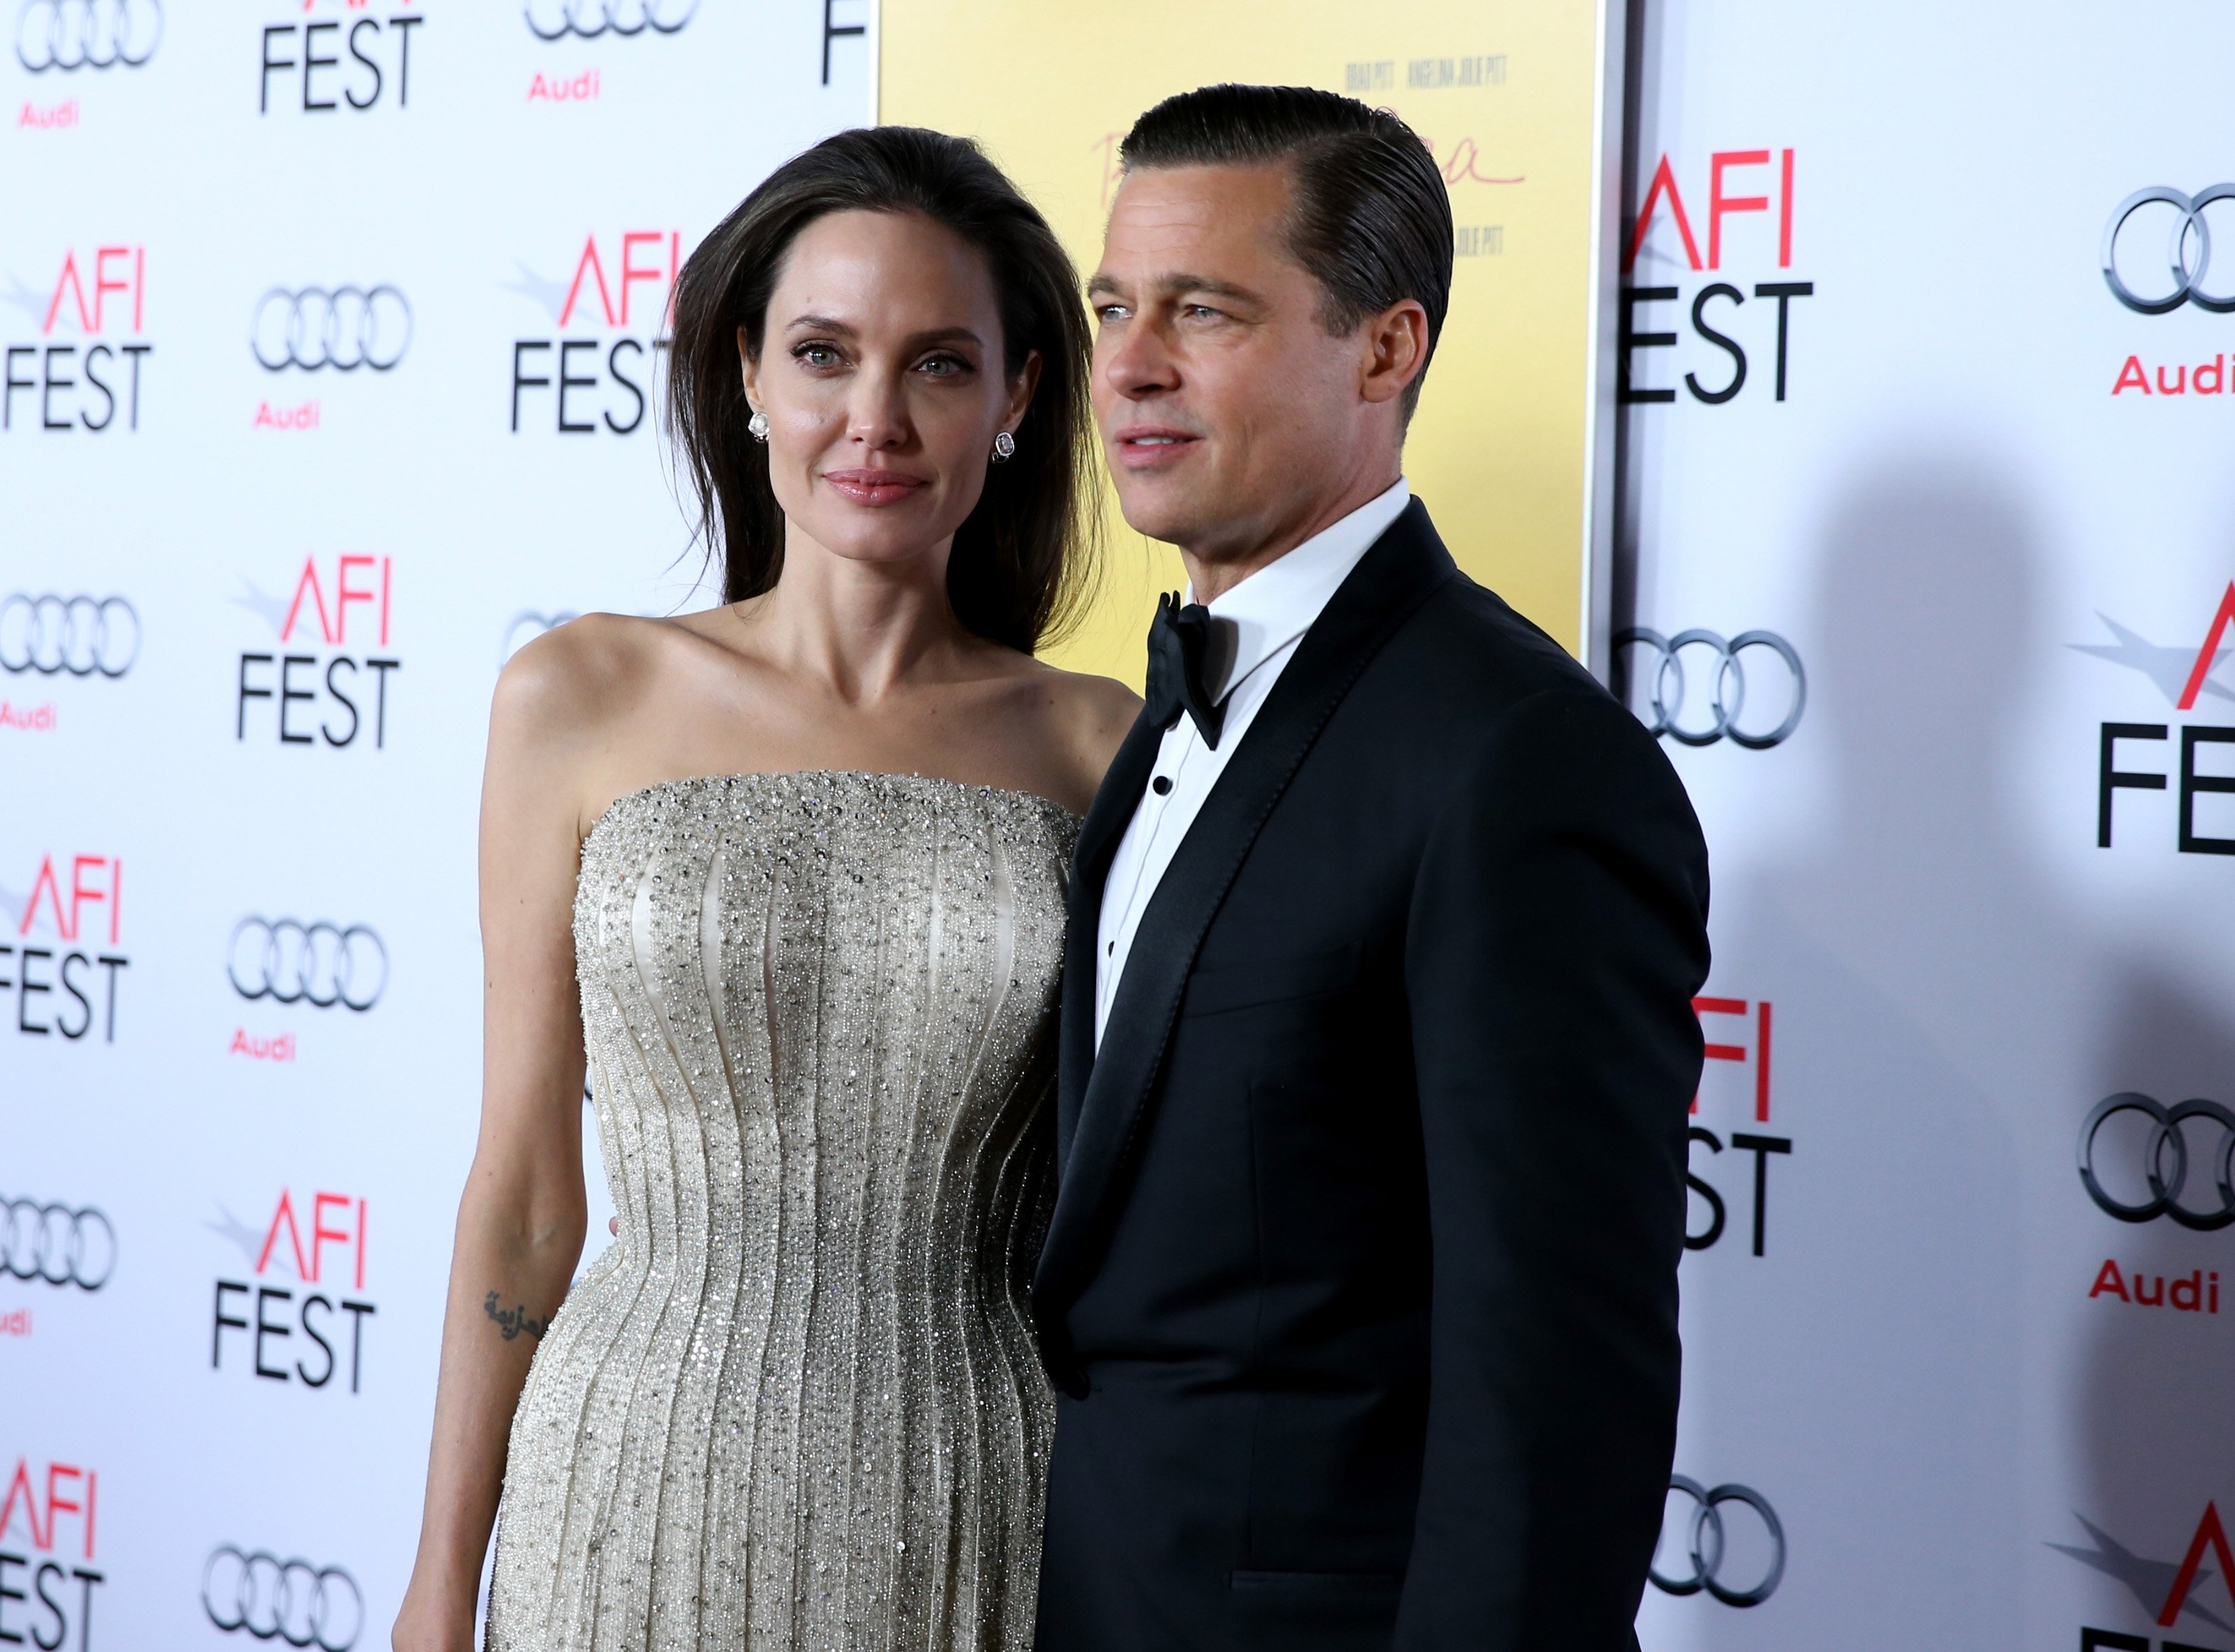 Image Credit: Getty Images /Jonathan Leibson | Brad and Angelina at AFI Fest 2015 by Audi